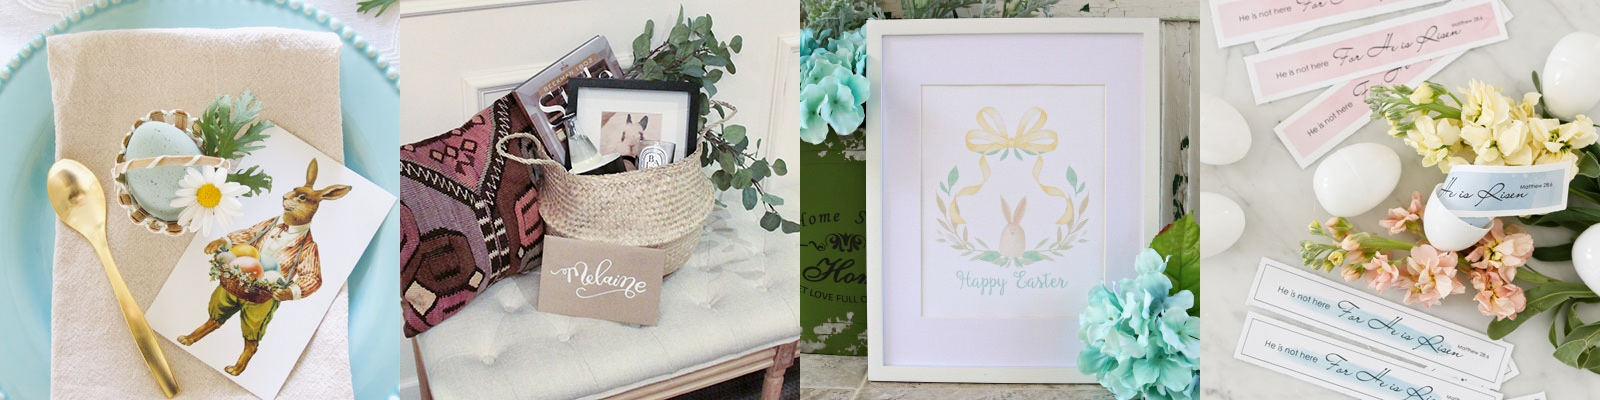 29 Free Easter Decor Printables